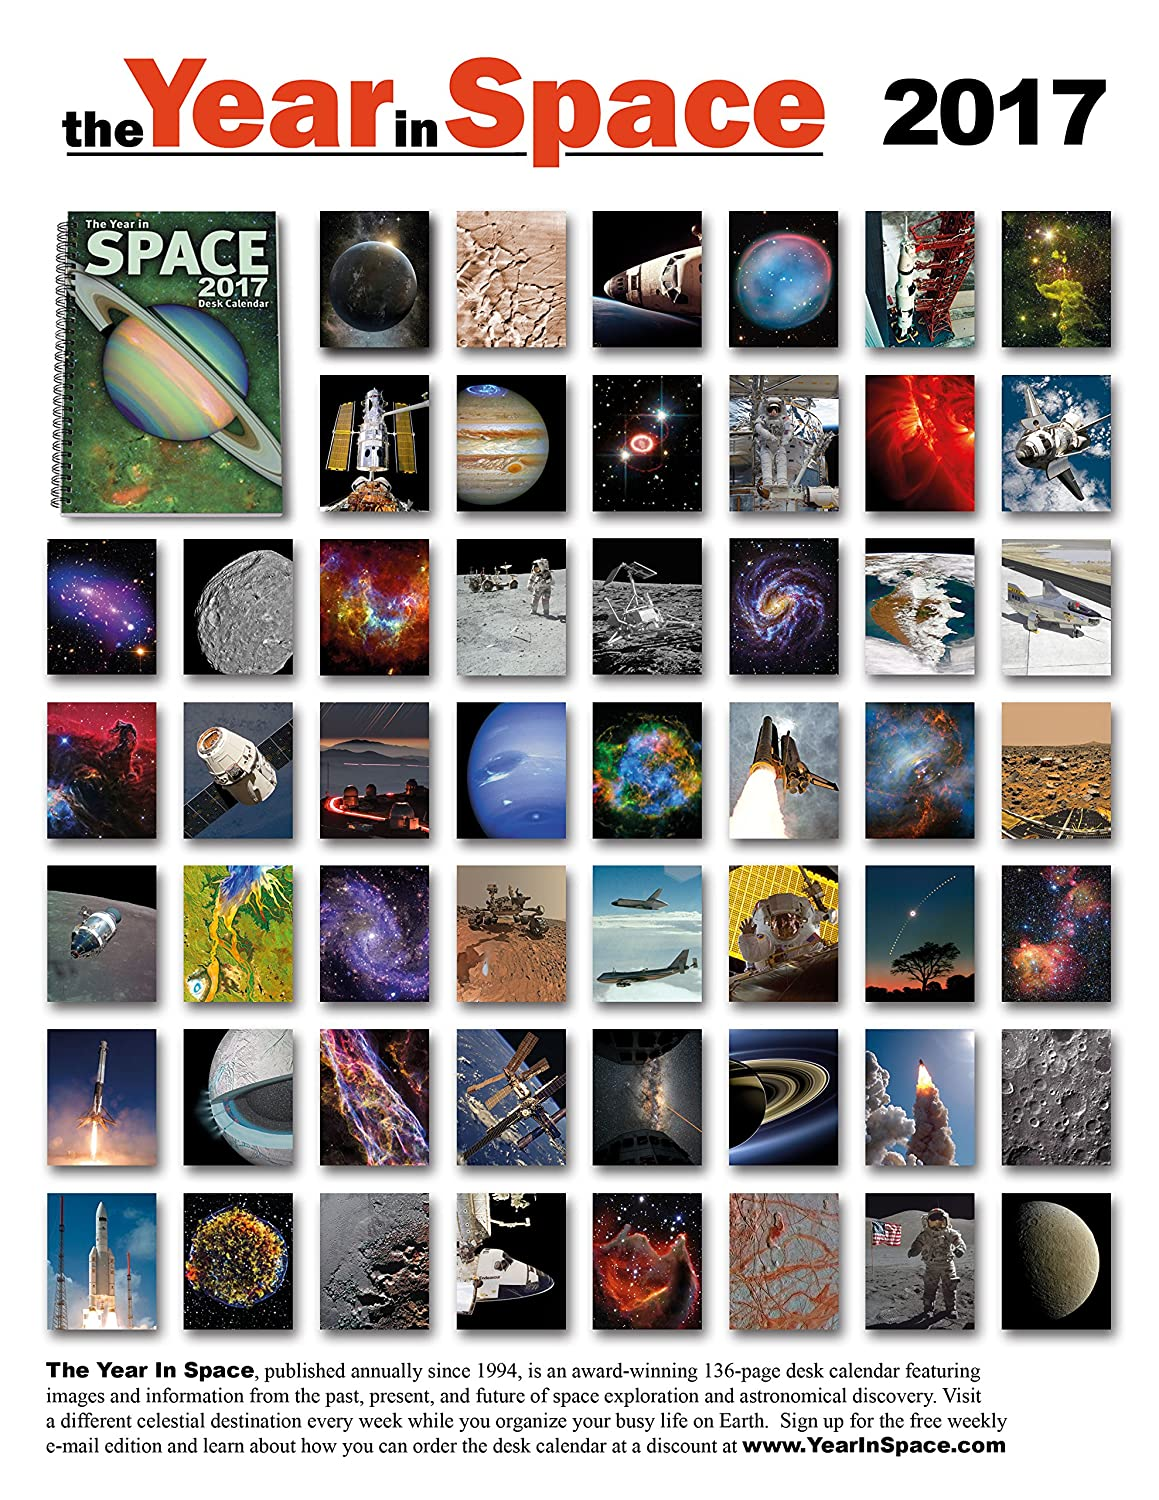 amazoncom the year in space 2017 desk calendar spiral bound 6 x 9 136 pages 53 weekly astronomy and space exploration images daily moon phases